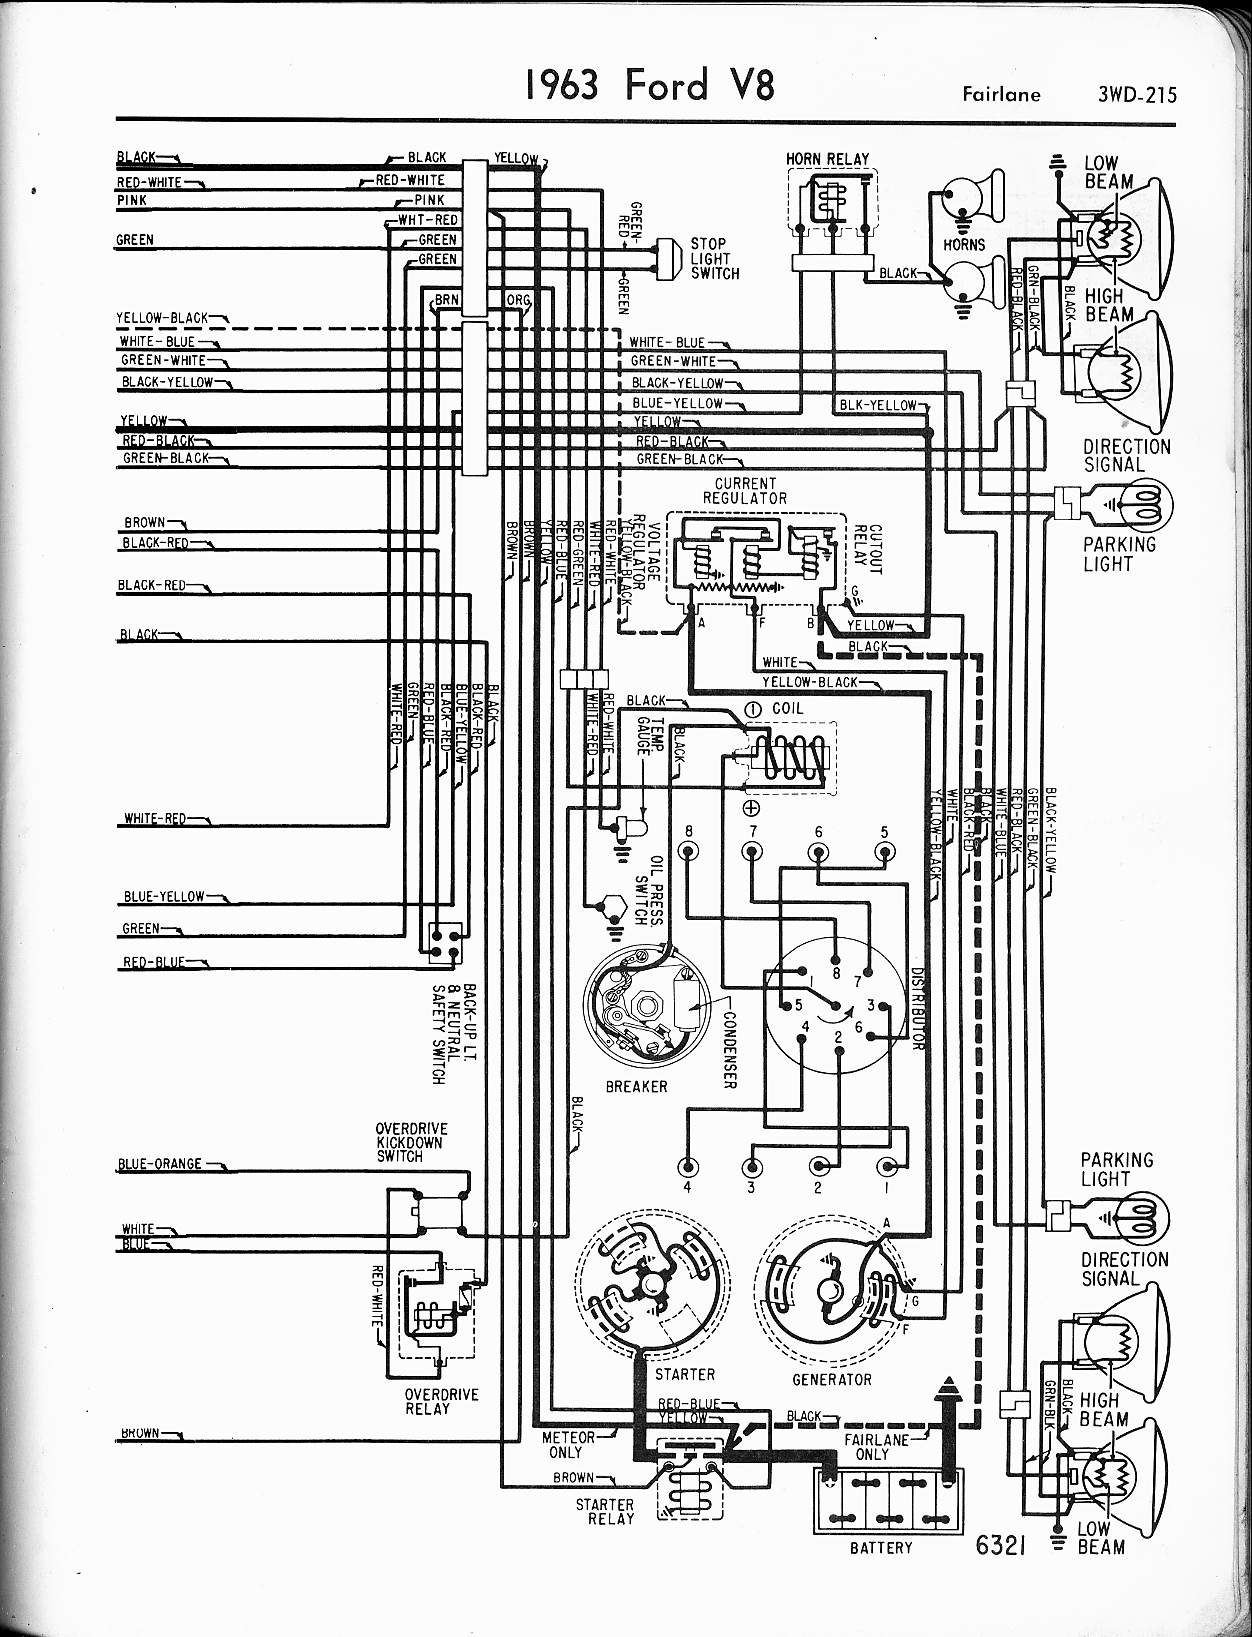 57 65 Ford Wiring Diagrams 1974 Jeep Cj5 Diagram External Regulator 1963 V8 Fairlane Right